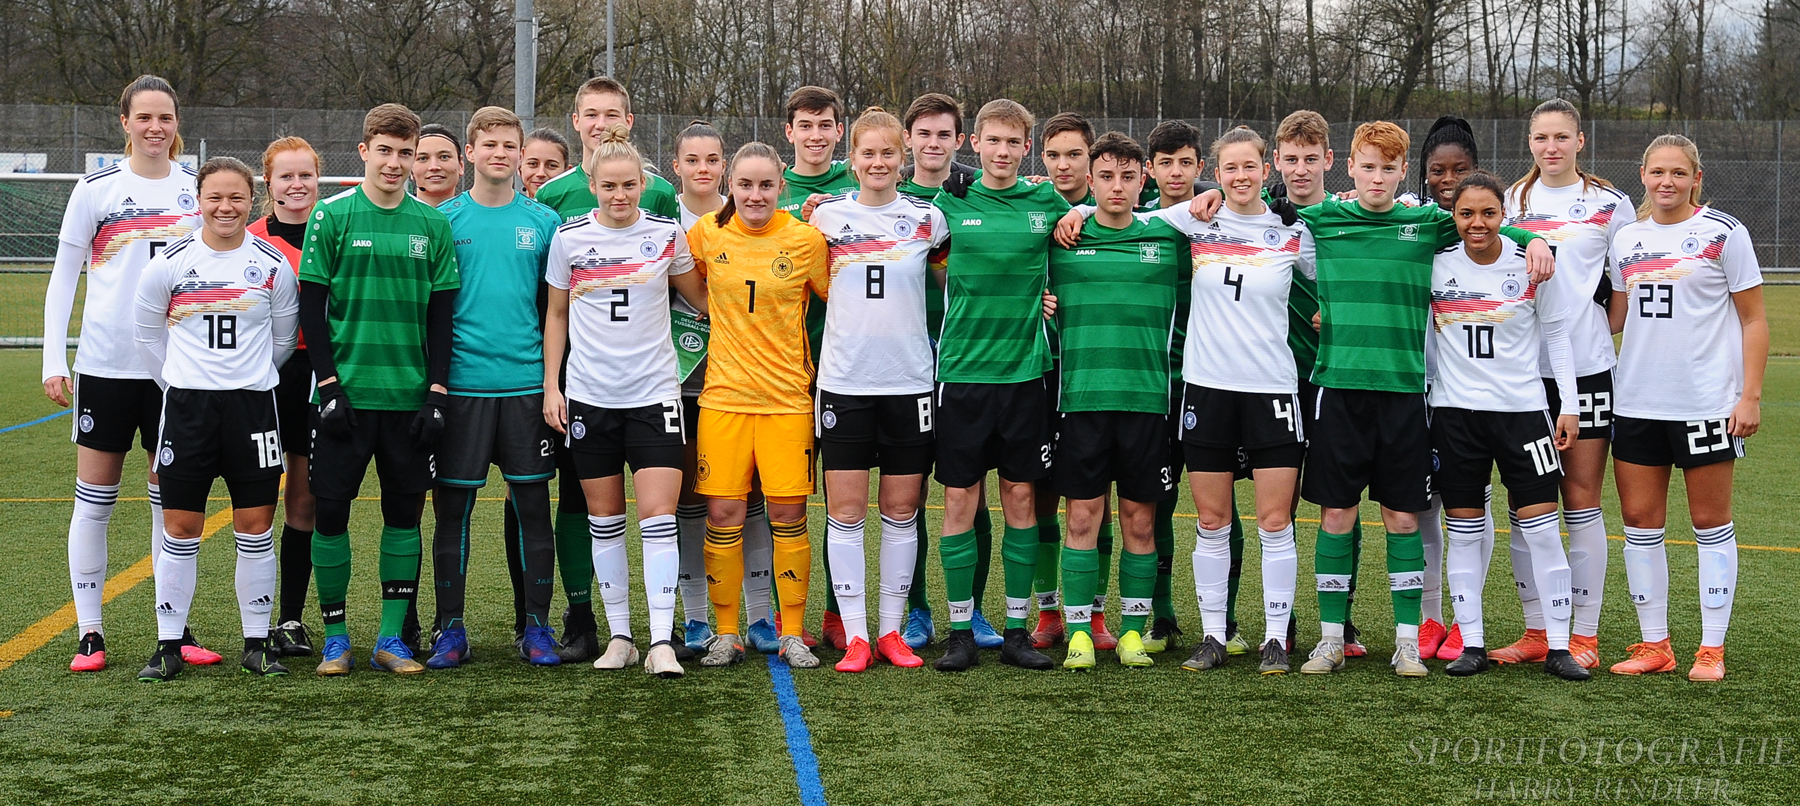 Damen - Nationalteam U20 / Deggendorf U16